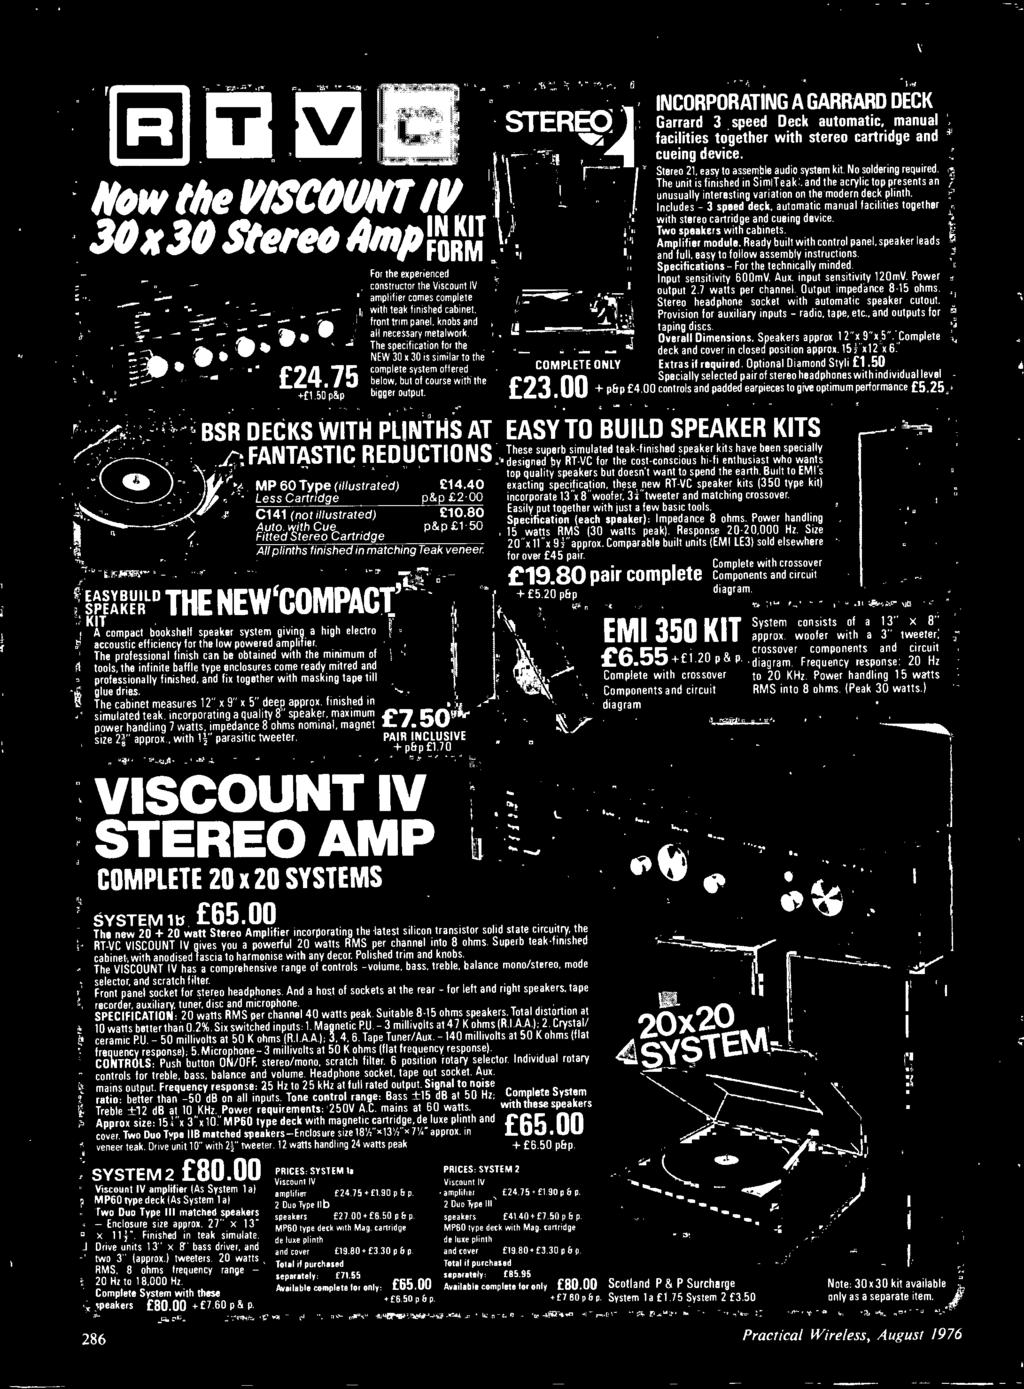 August Also Audio De Cassette Po Er Supply For Ca Pdf 500w Power Inverter Circuit Tip35c And Products Ild Speaker The Newcompac Kit A Compact Bookshelf System Giving High Electro